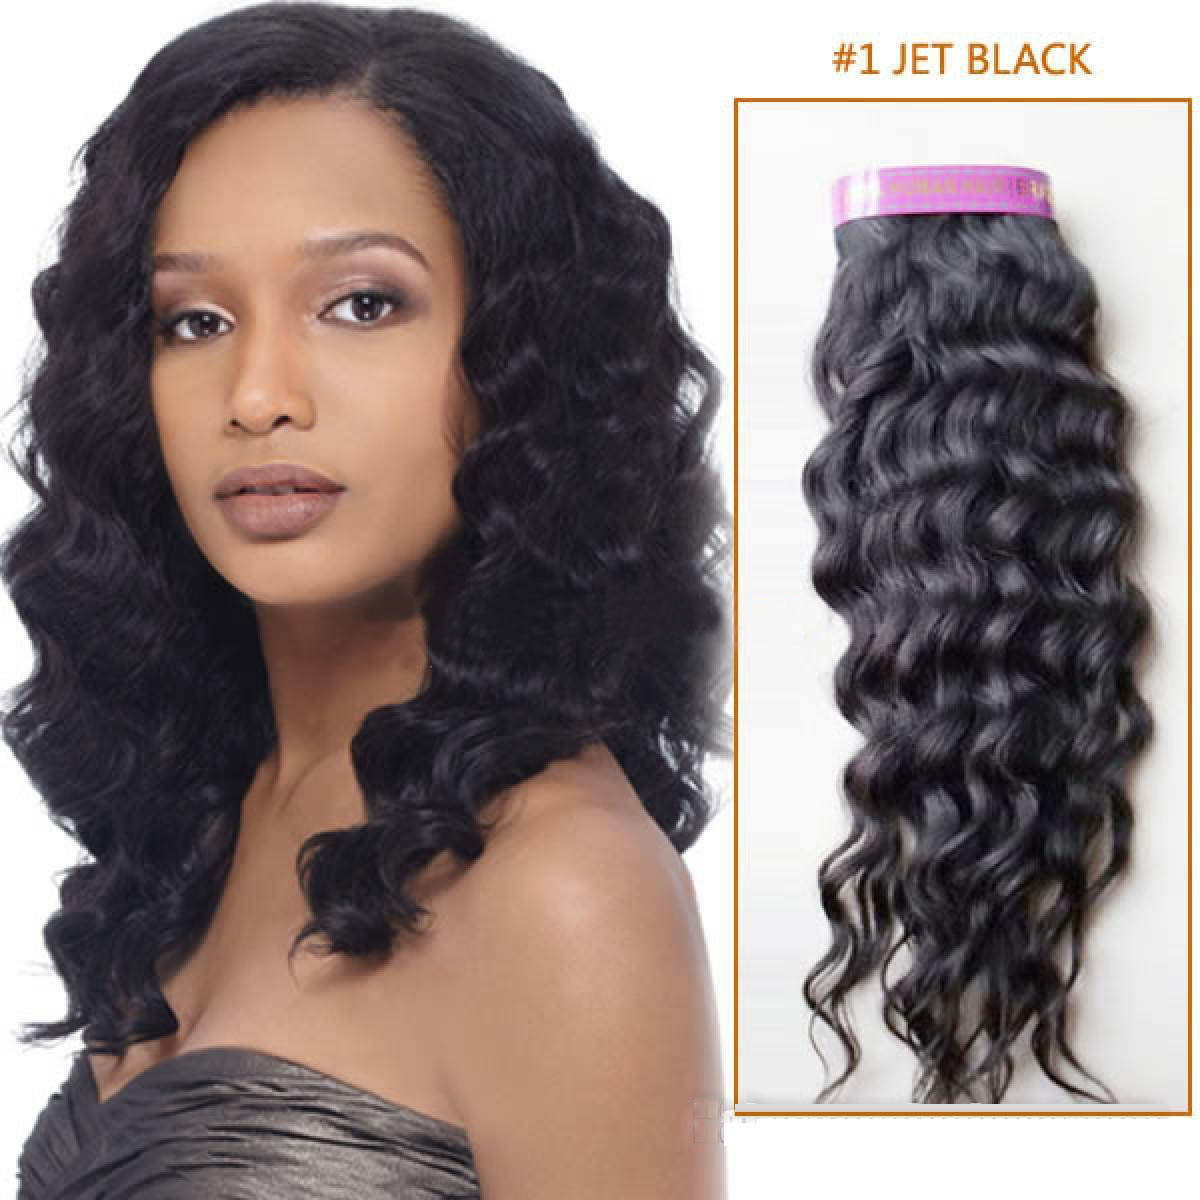 30 Inch 1 Jet Black Curly Indian Remy Hair Wefts